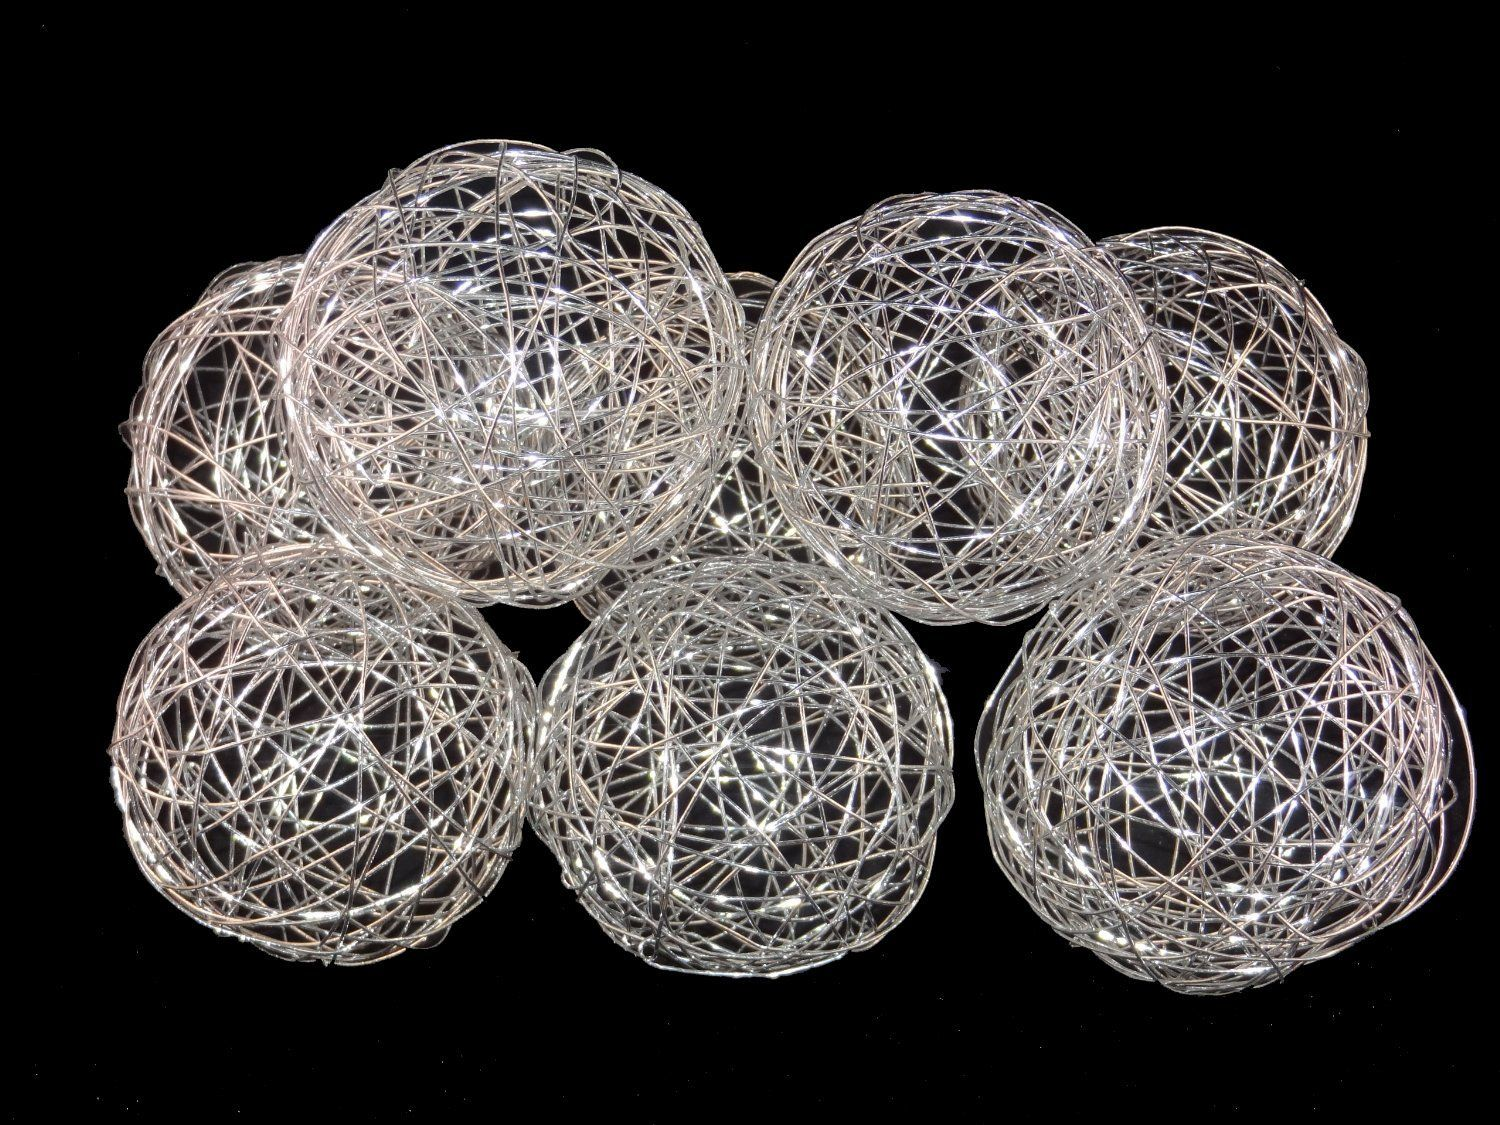 Decorative Balls For Bowls Australia 3'' Decorative Wire Ball Silverset Of 8 Balls  Little Beautiful